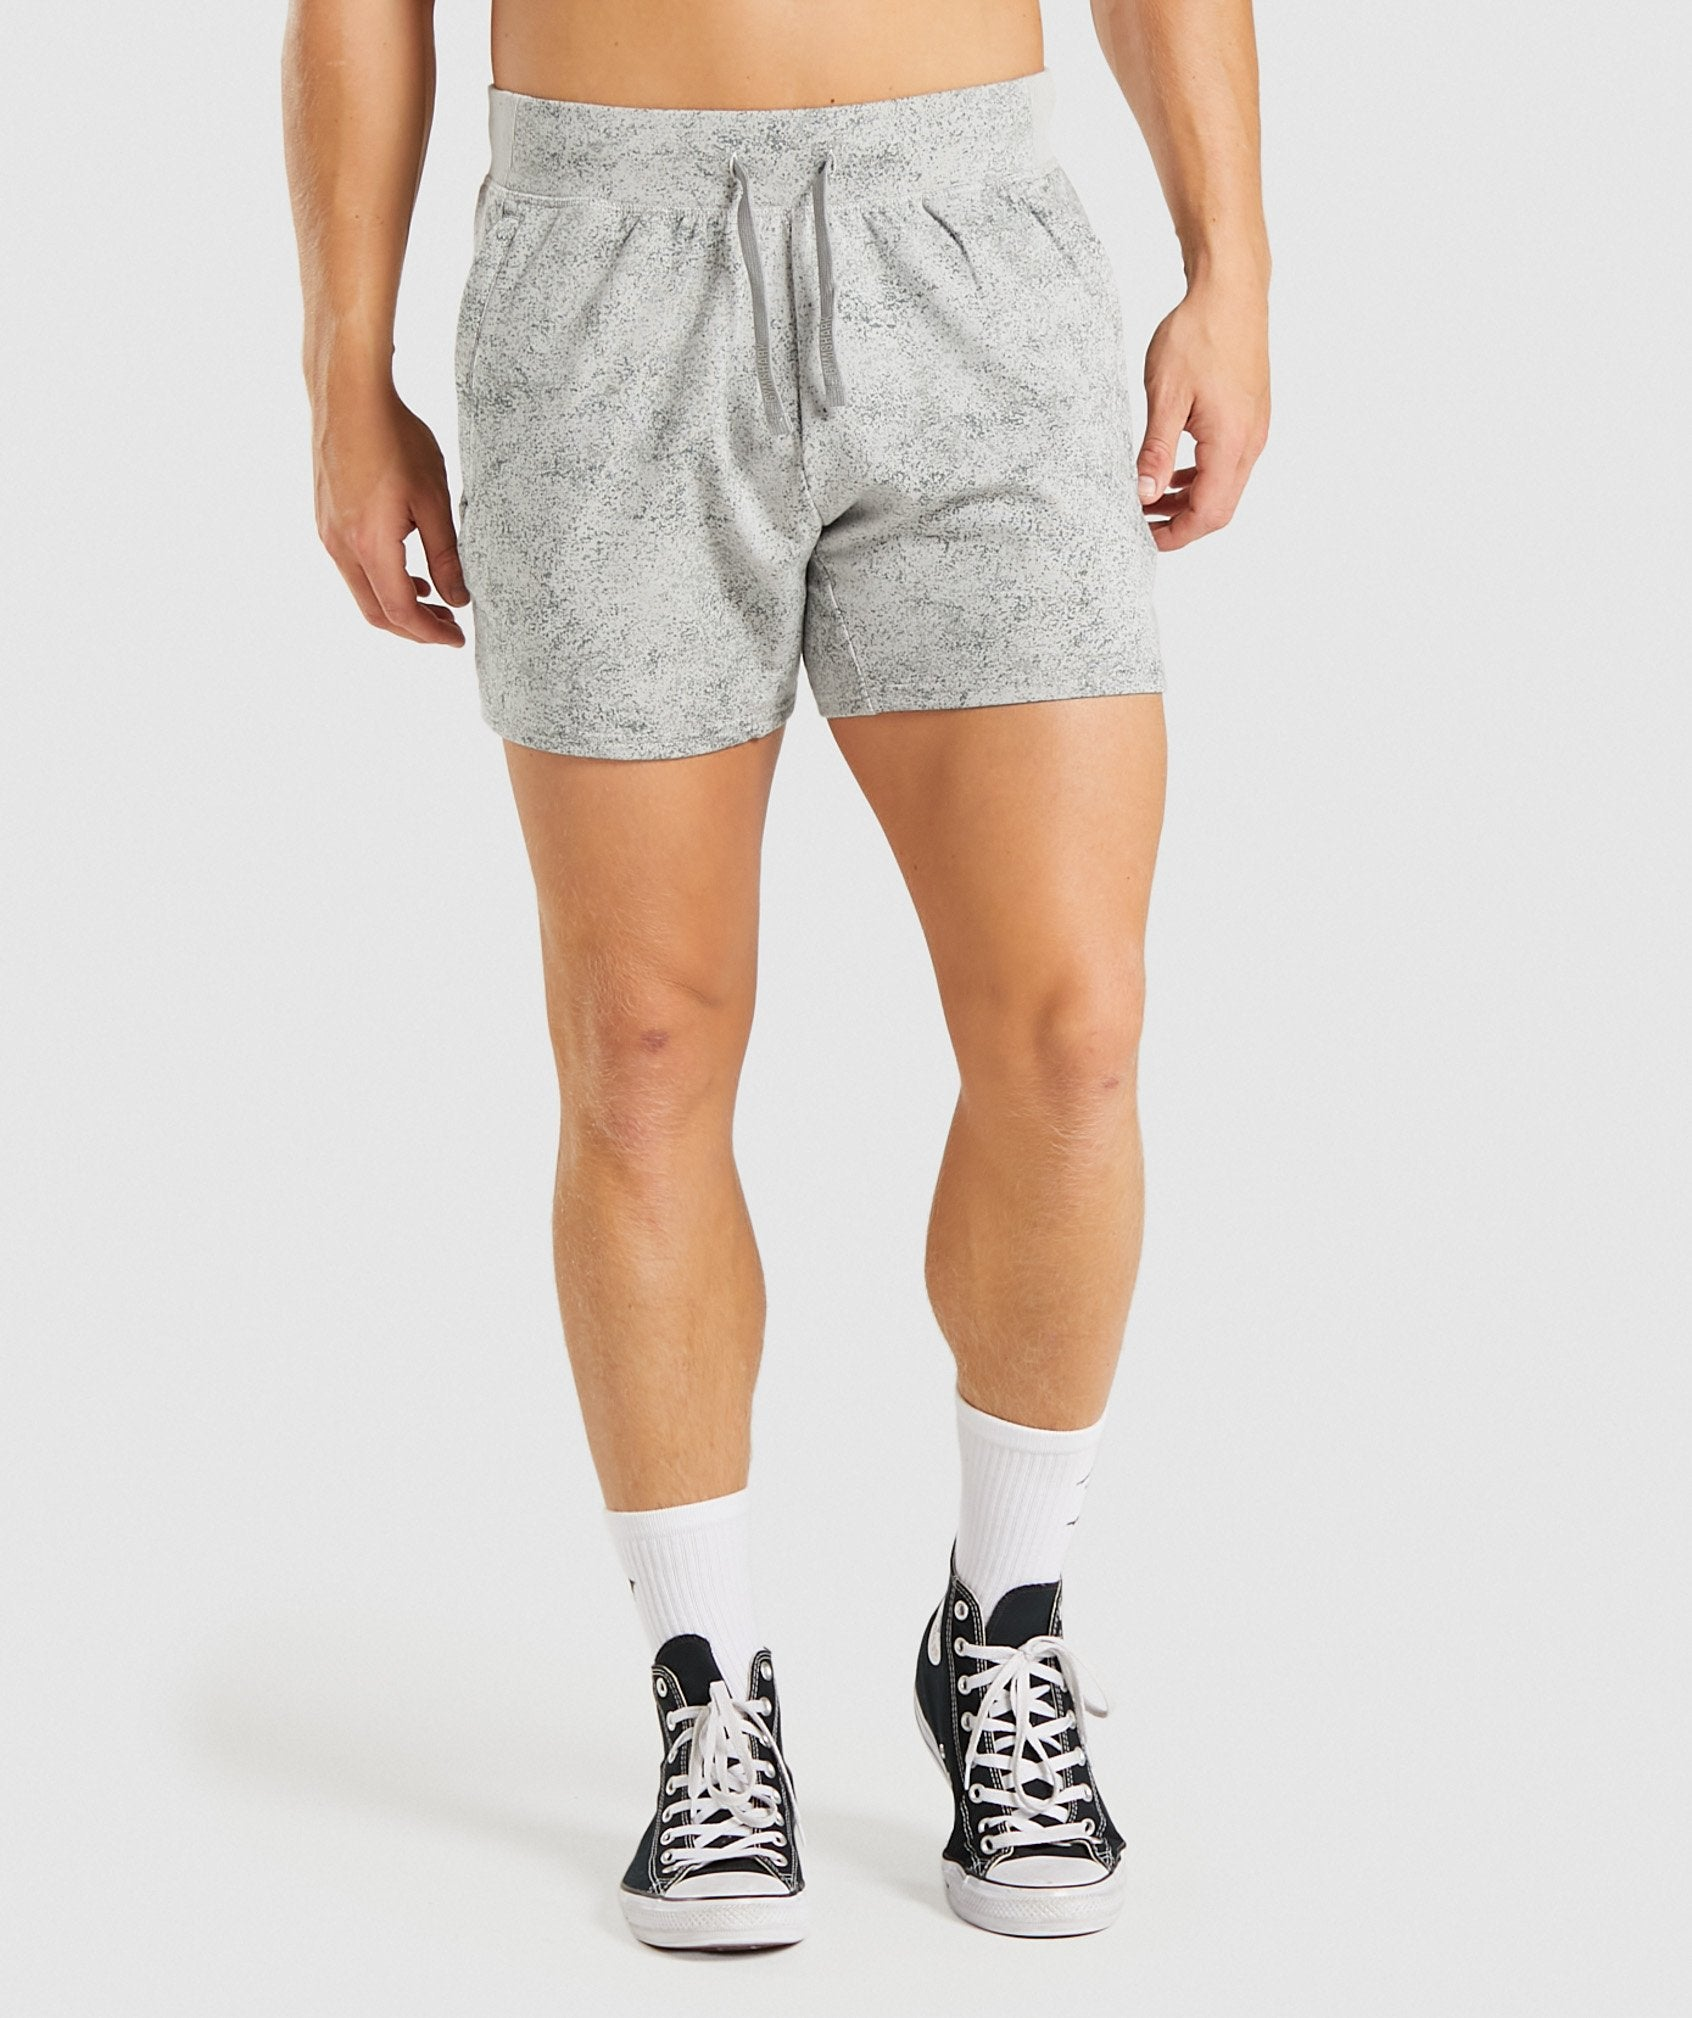 Classier: Buy Gymshark Chalk 5 Quad Shorts - Light Grey Print - Gymshark